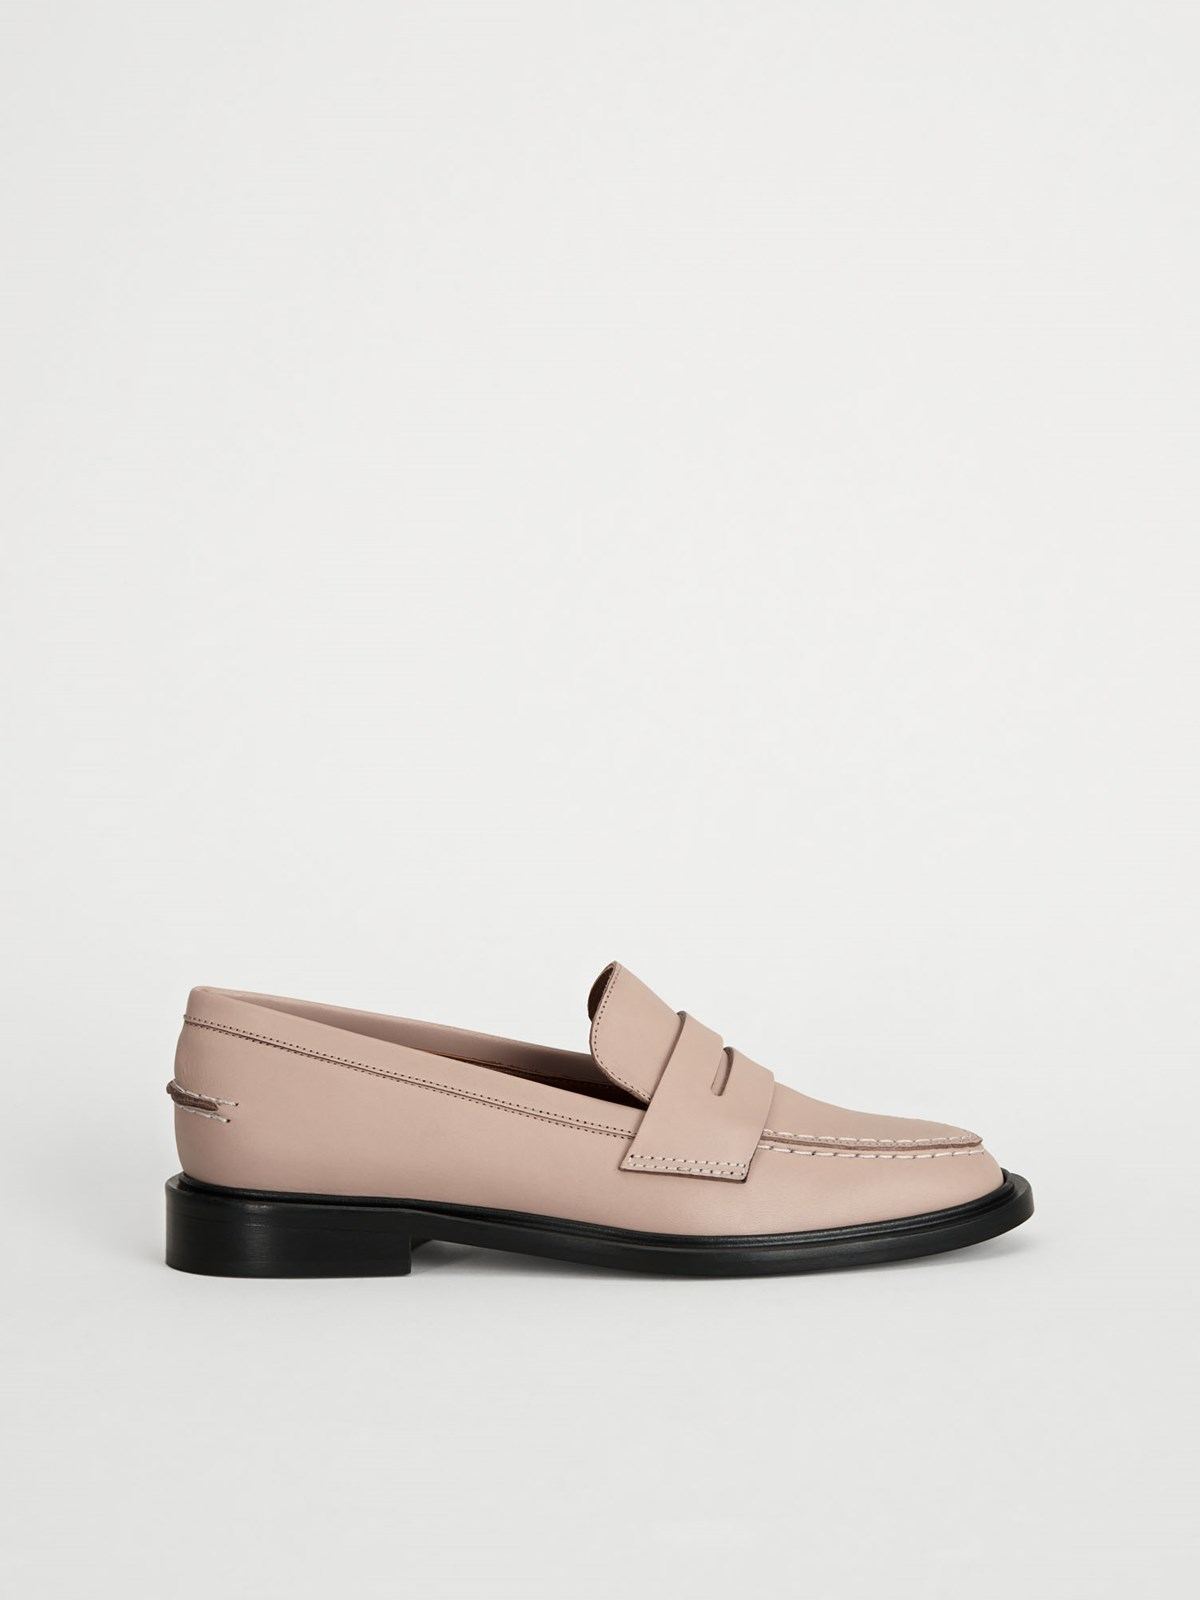 Monti Sand Loafers